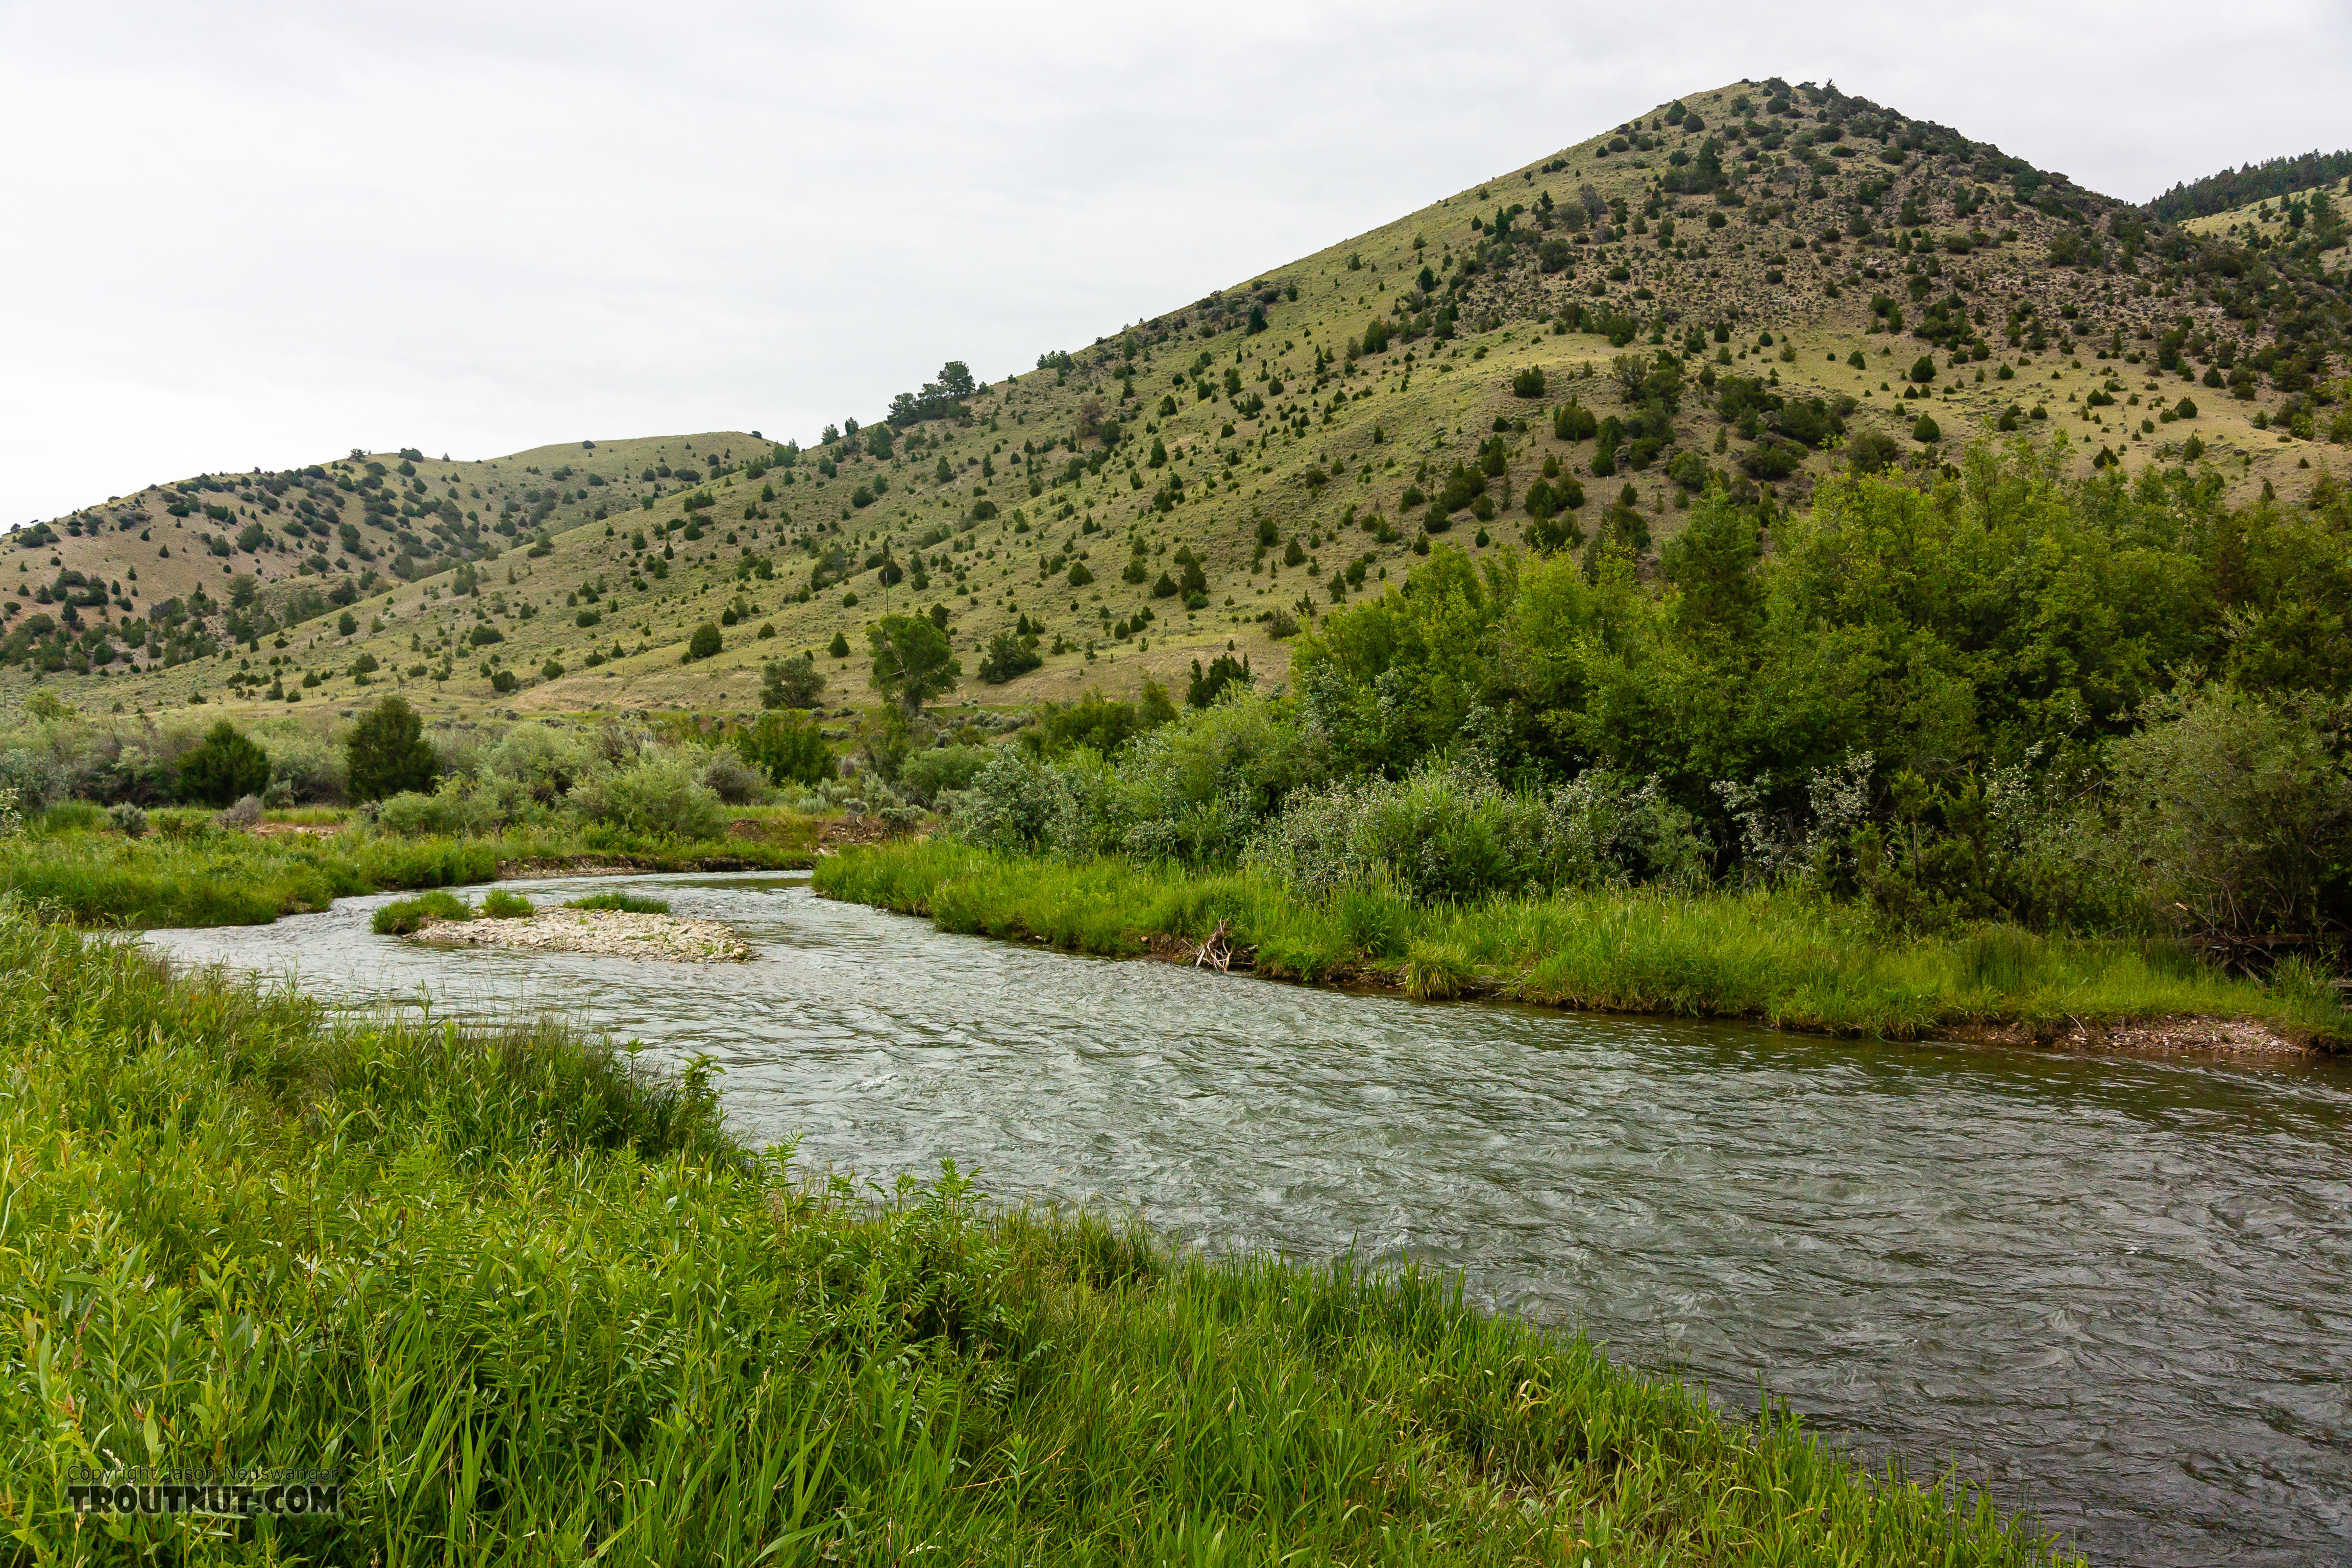 From the Ruby River in Montana.